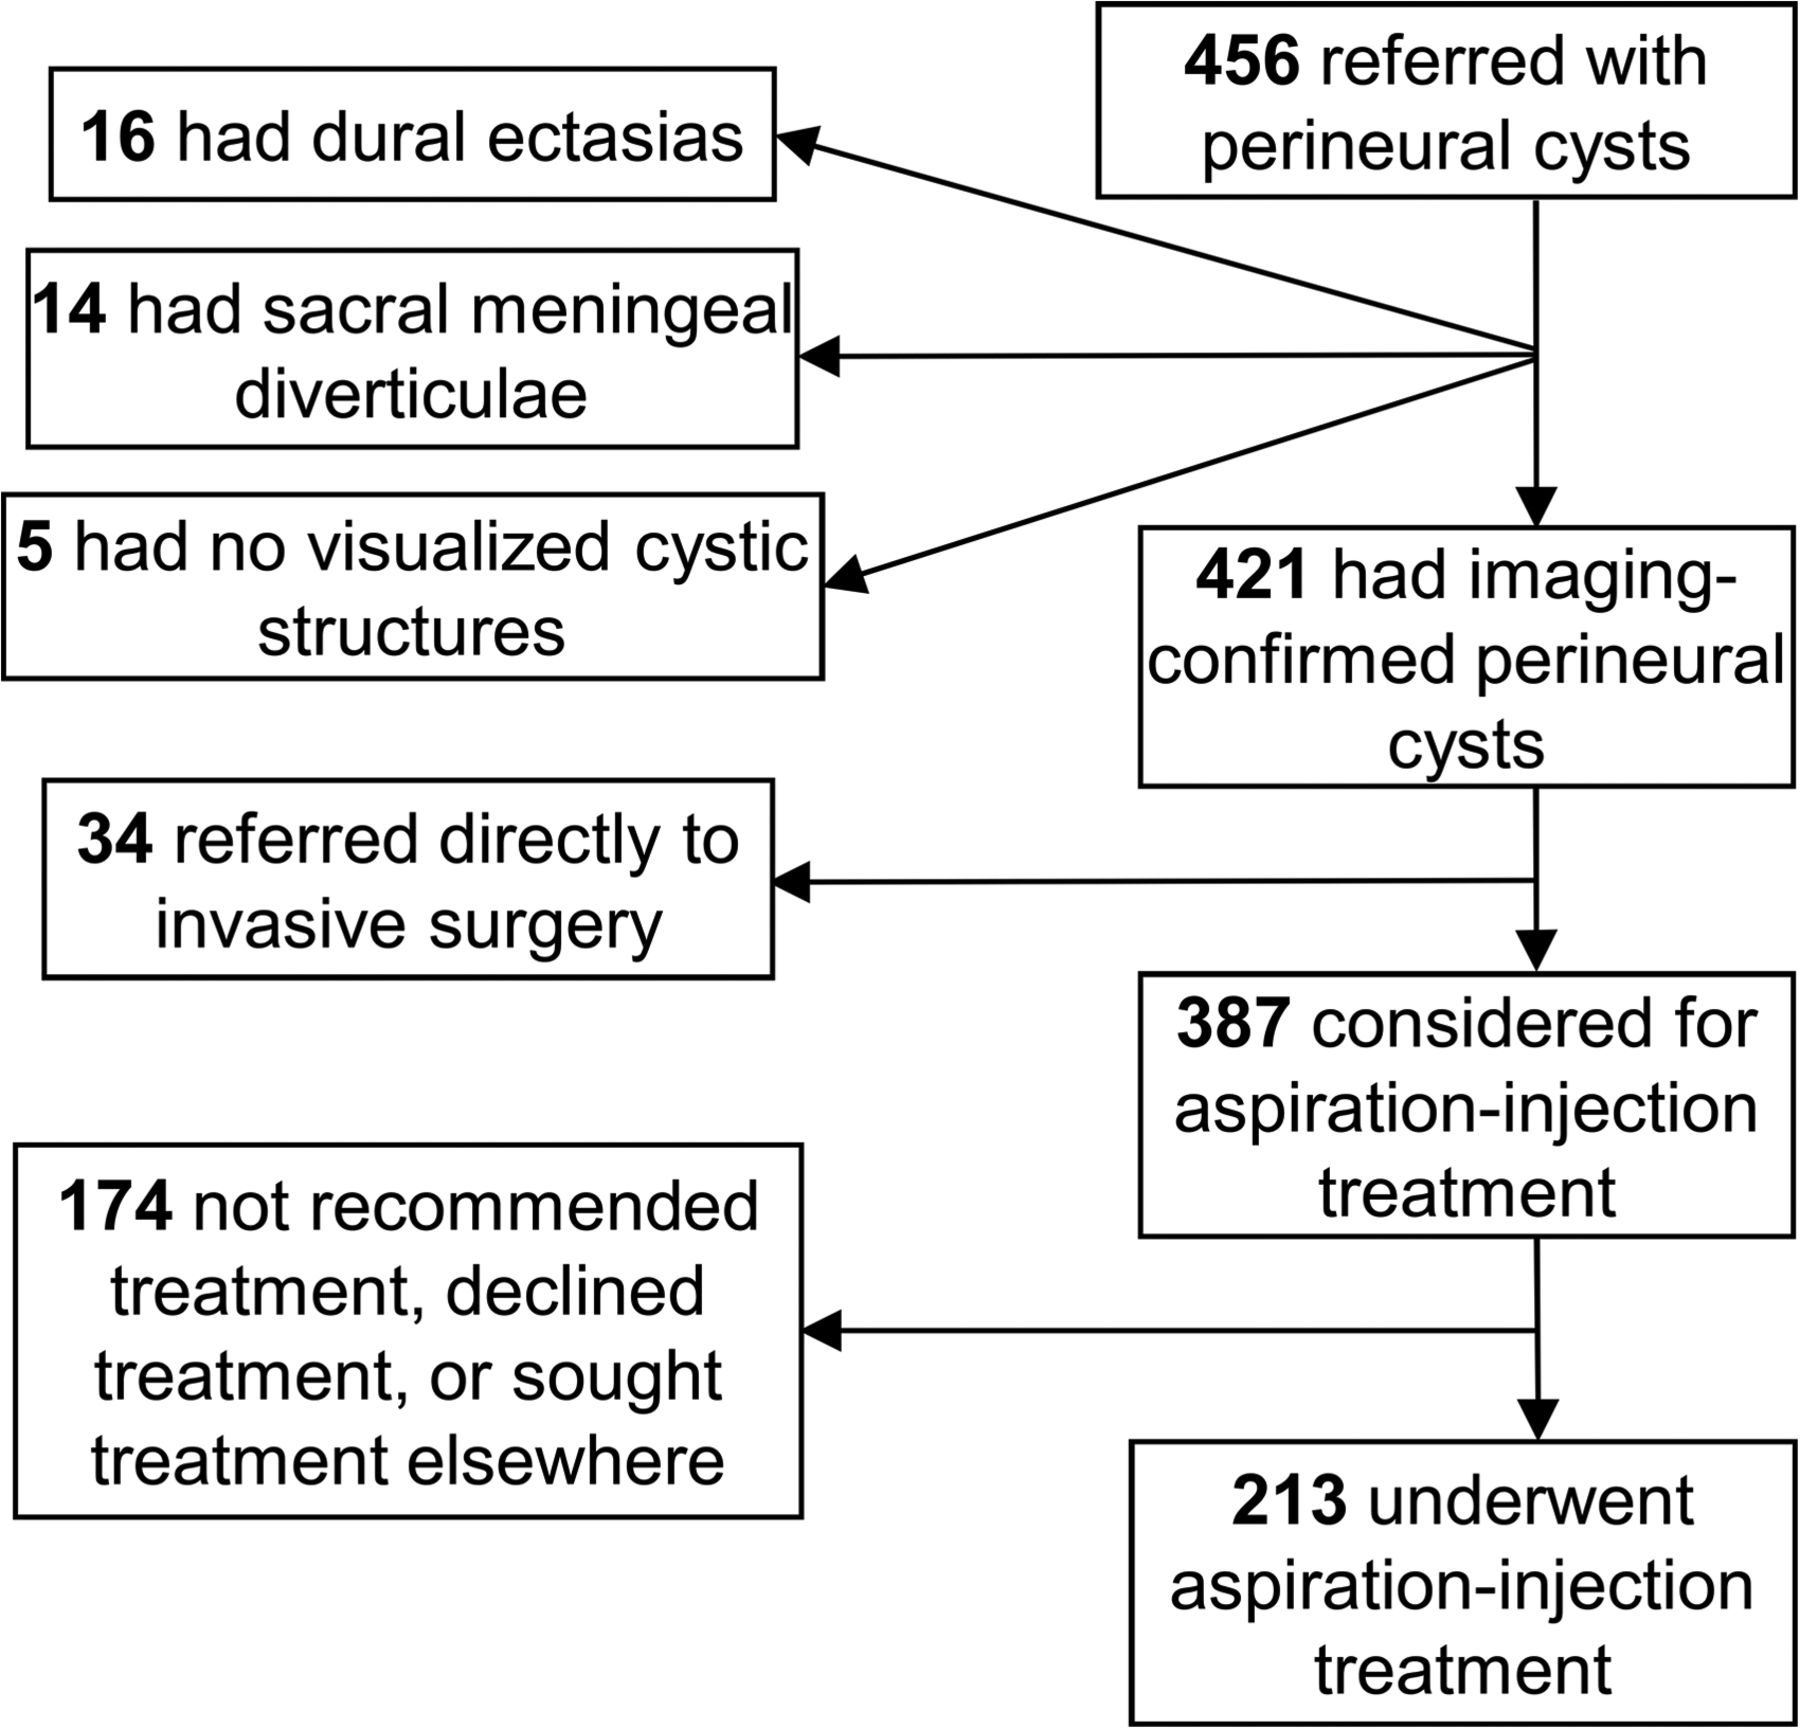 Treatment of 213 Patients with Symptomatic Tarlov Cysts by